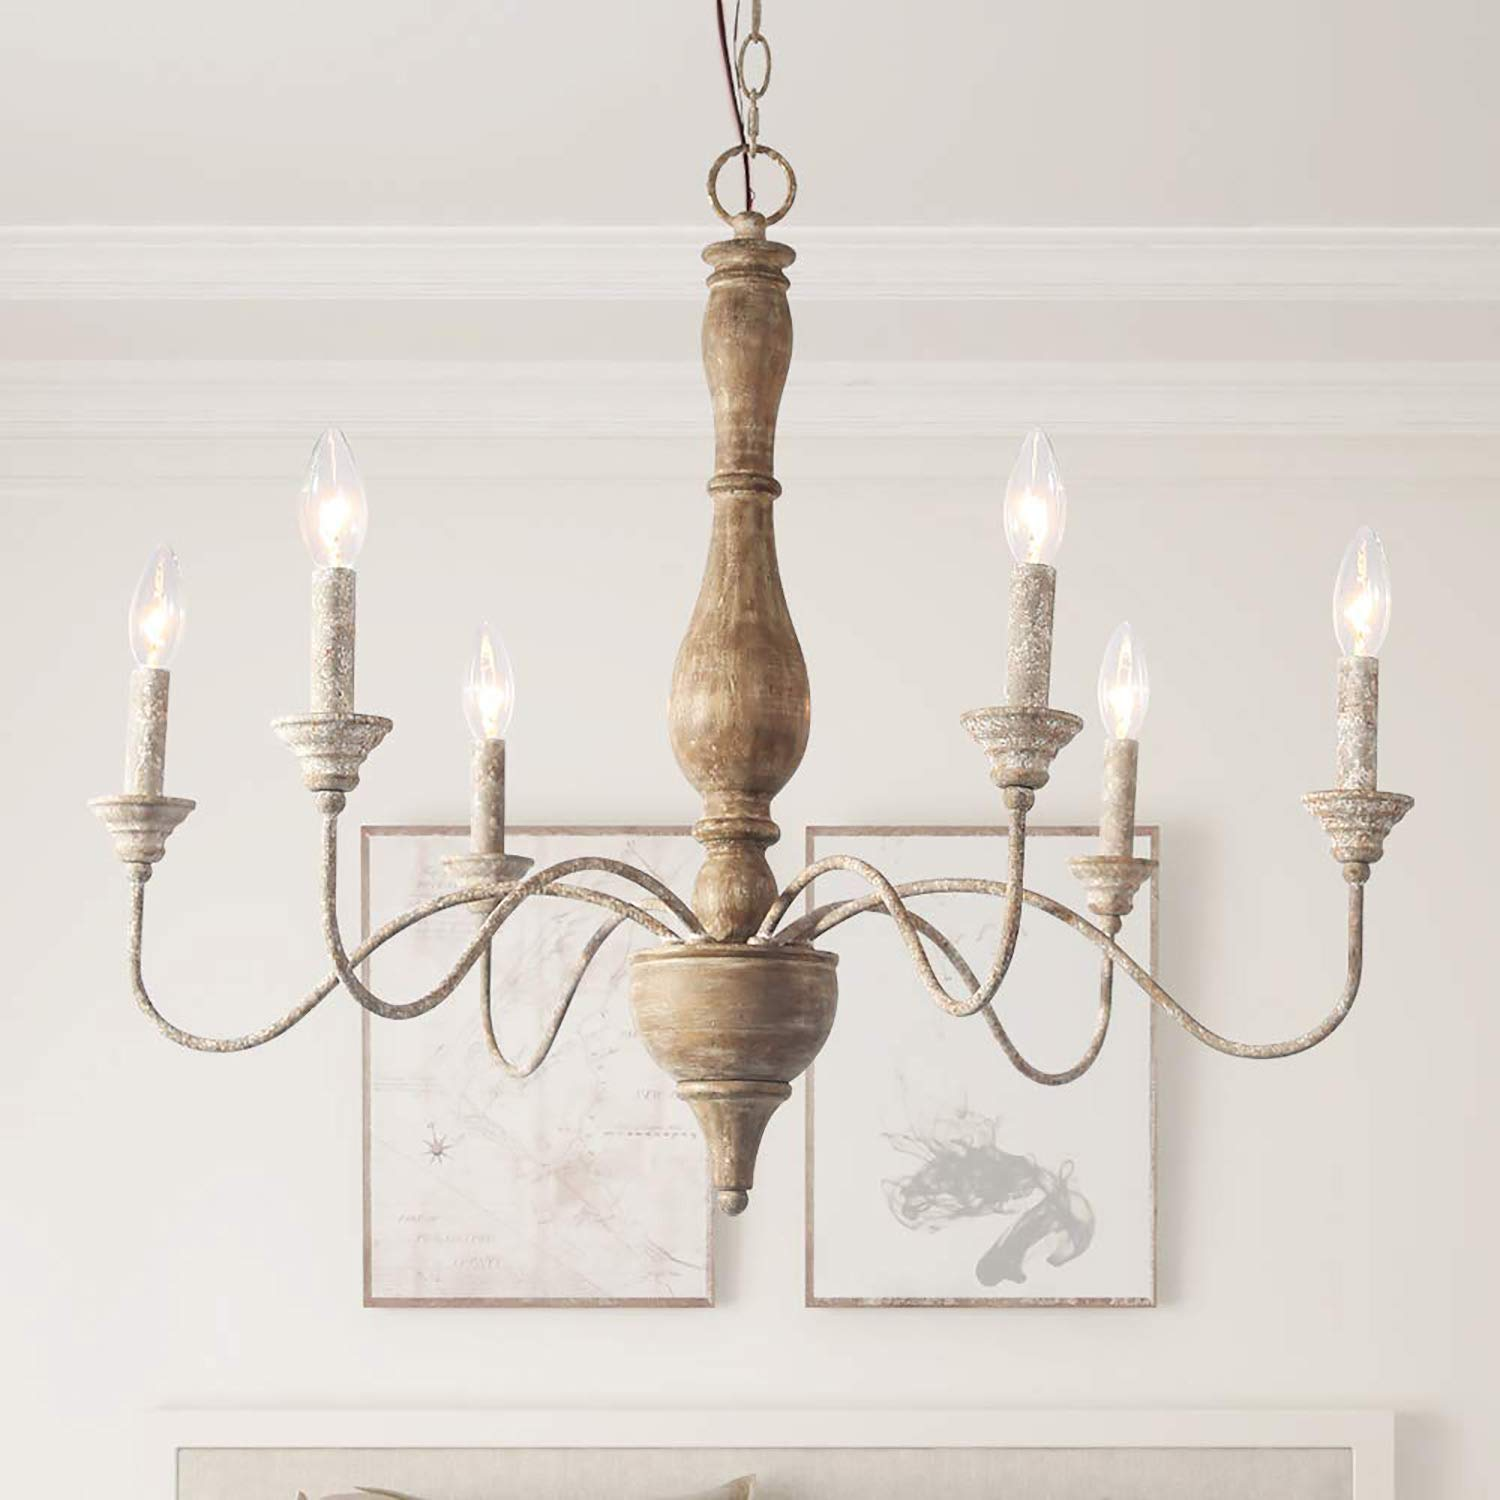 LNC Handmade Wood Chandelier, 6-Light Rust Arms French Country Chandelier for Dining Room, Bedroom, Living Room and Bathroom